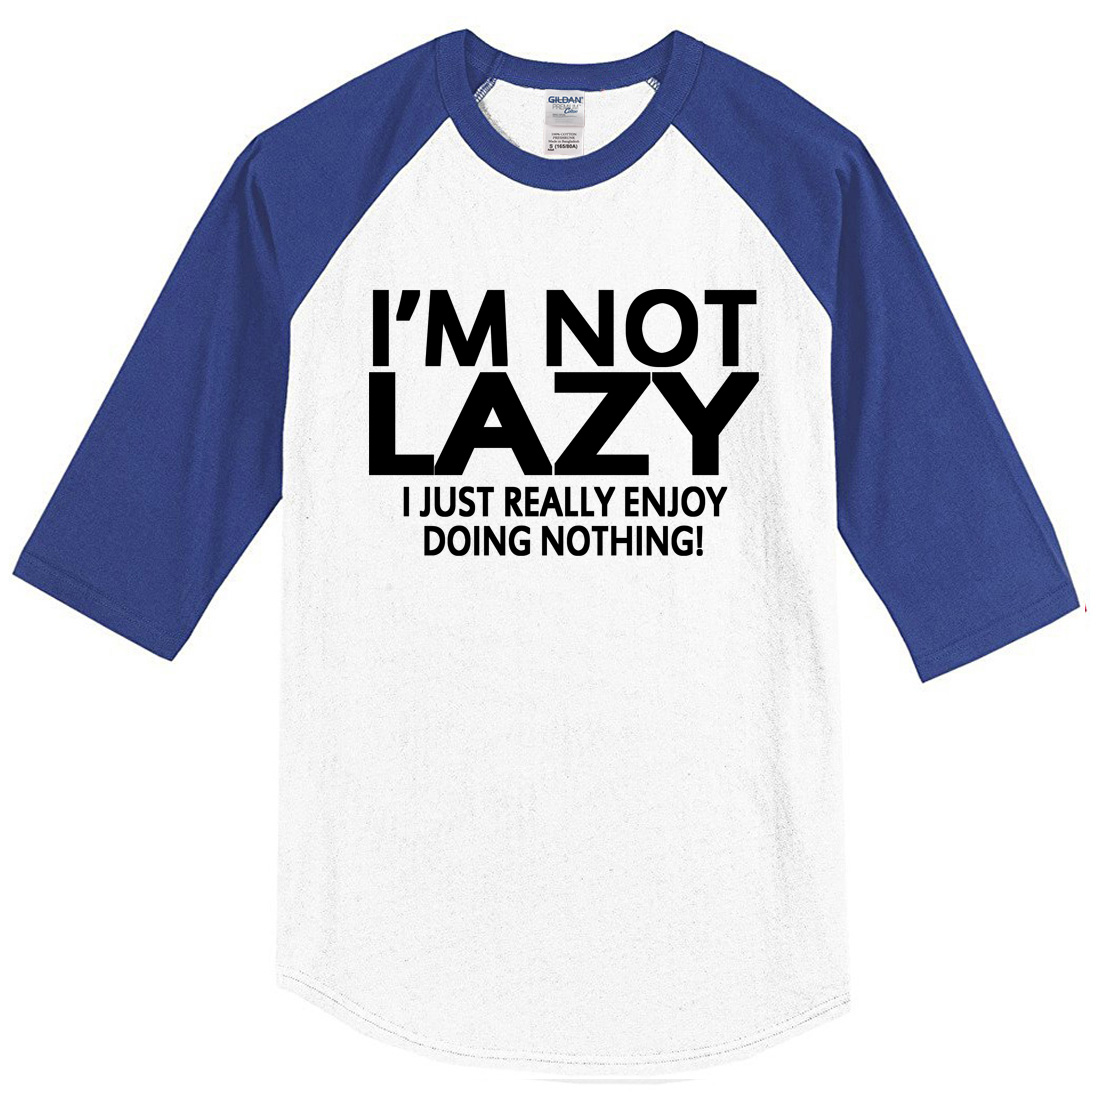 2017 summer T shirt I M NOT LAZY funny casual crossfit brand font b clothing b